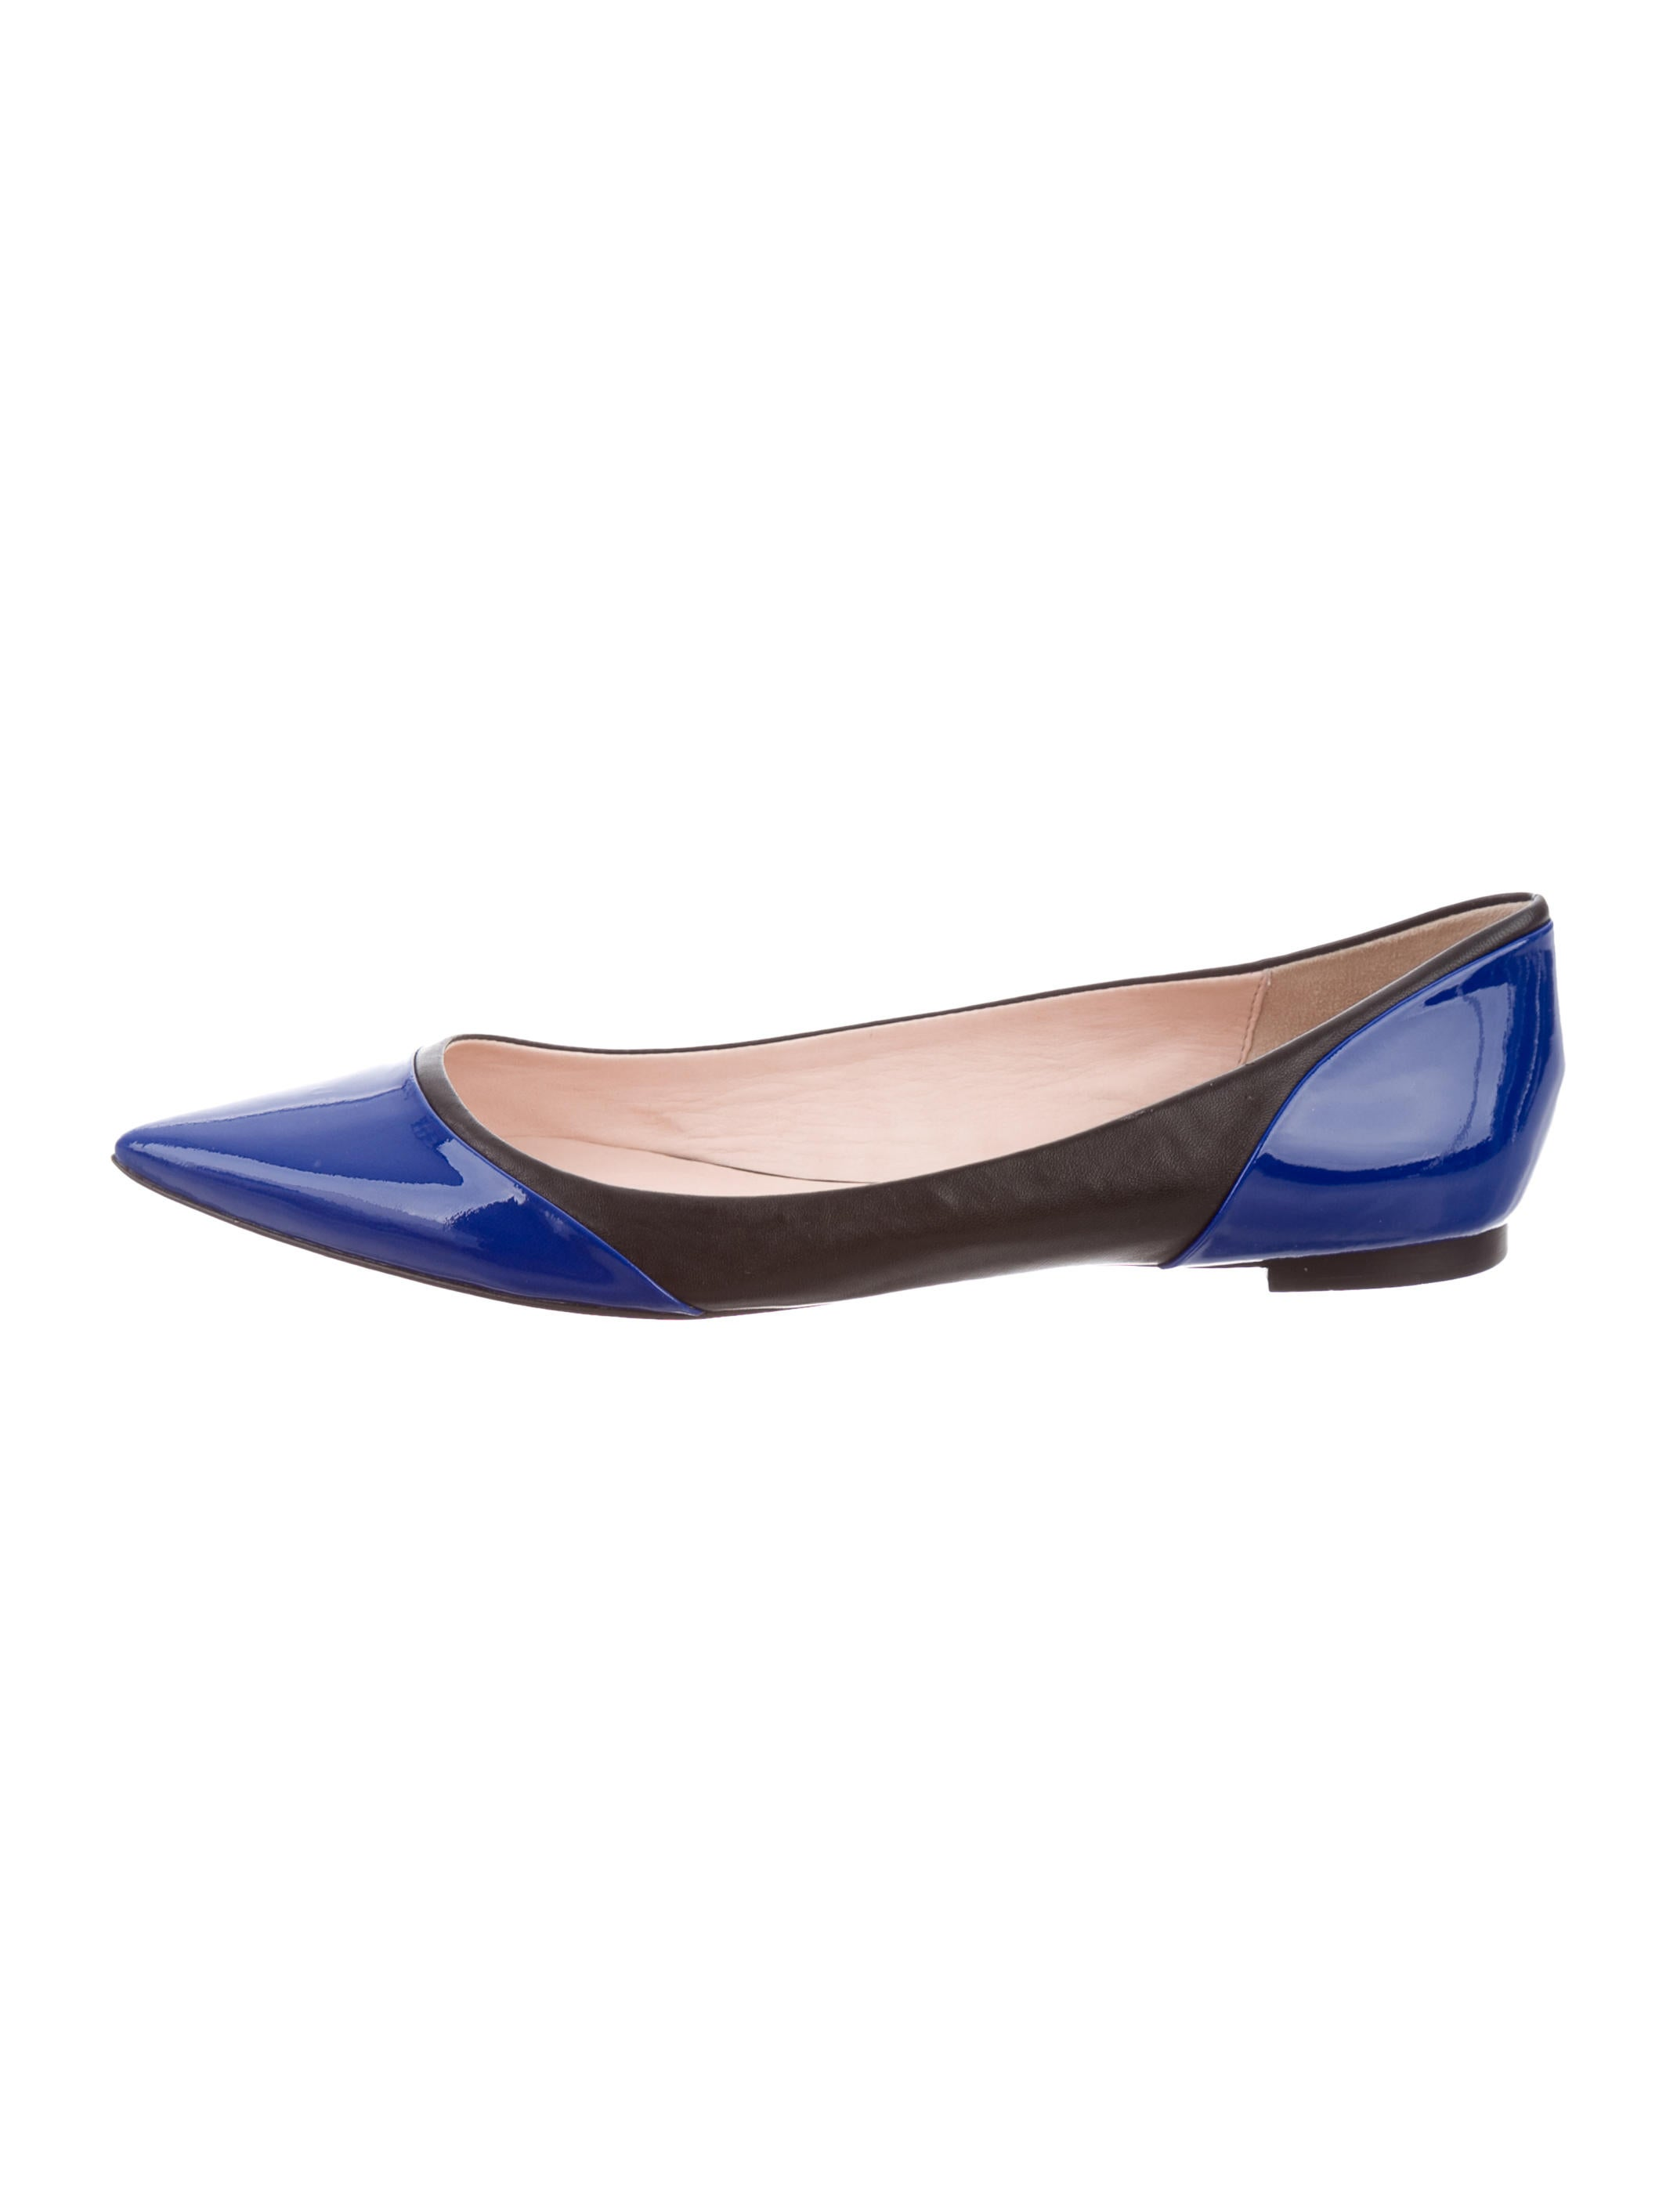 Kate spade new york pointed toe patent leather flats for Kate spade new york flats